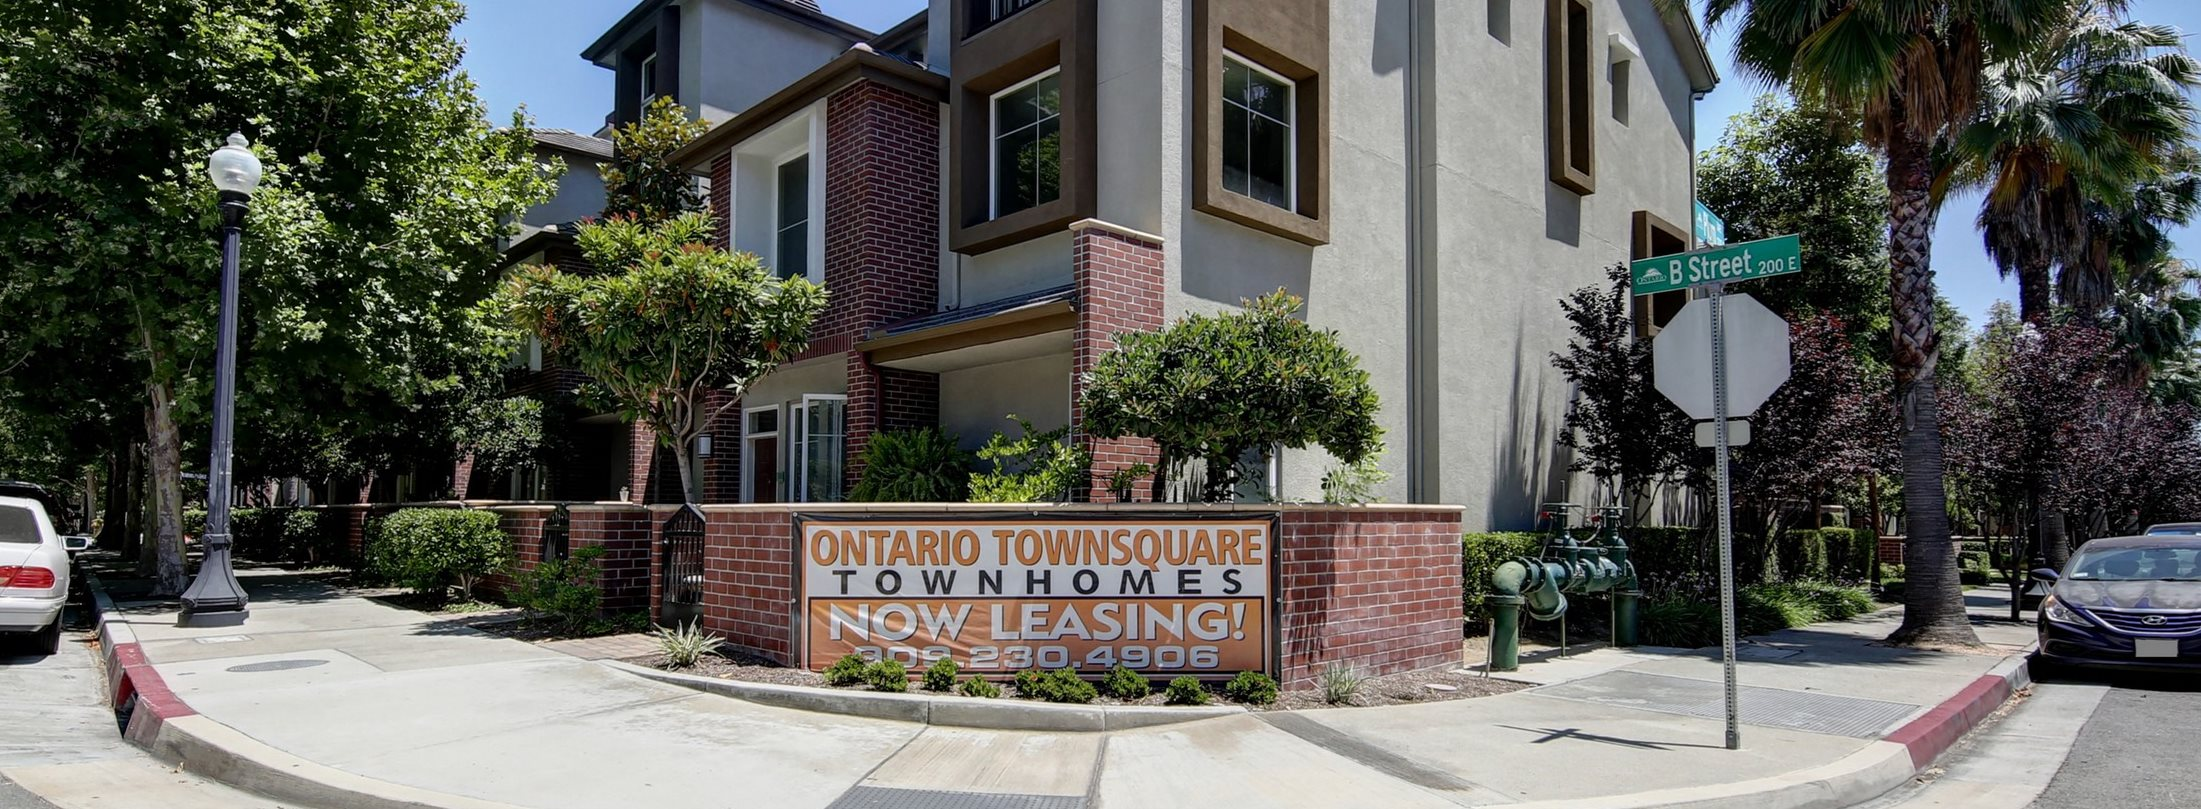 Apartments In Ontario Ca Ontario Town Square Townhomes